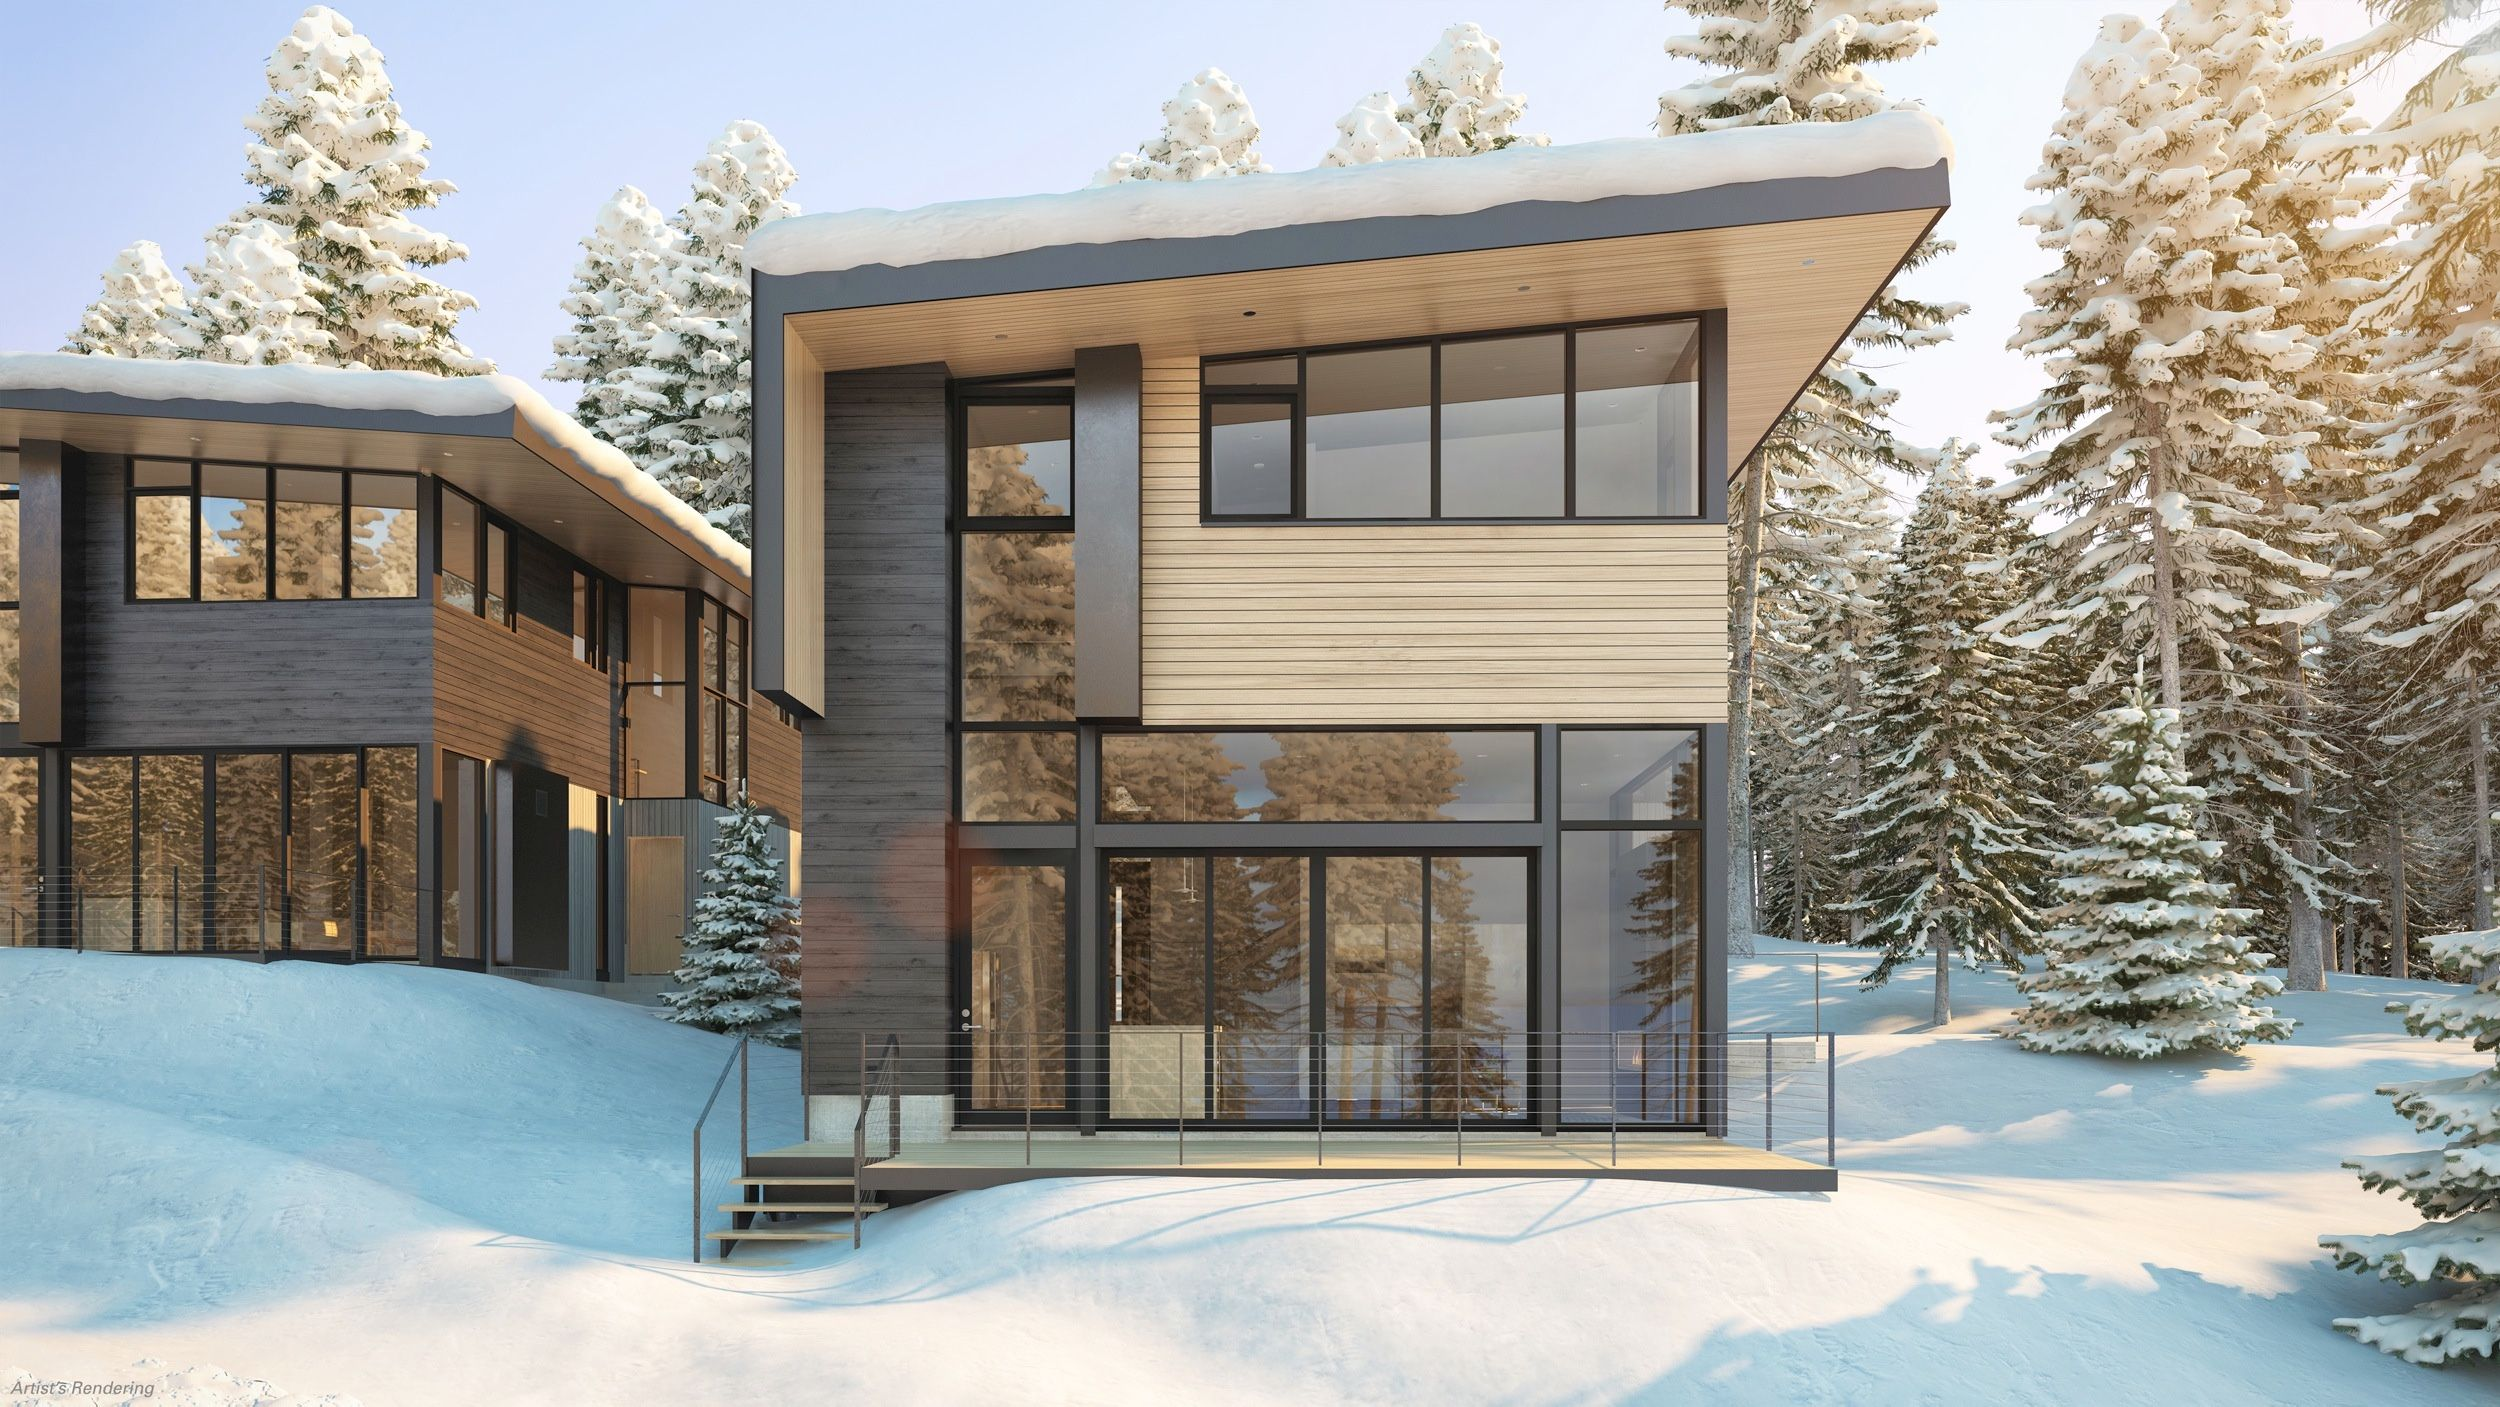 ski chalets get sleek apple store architects design lake